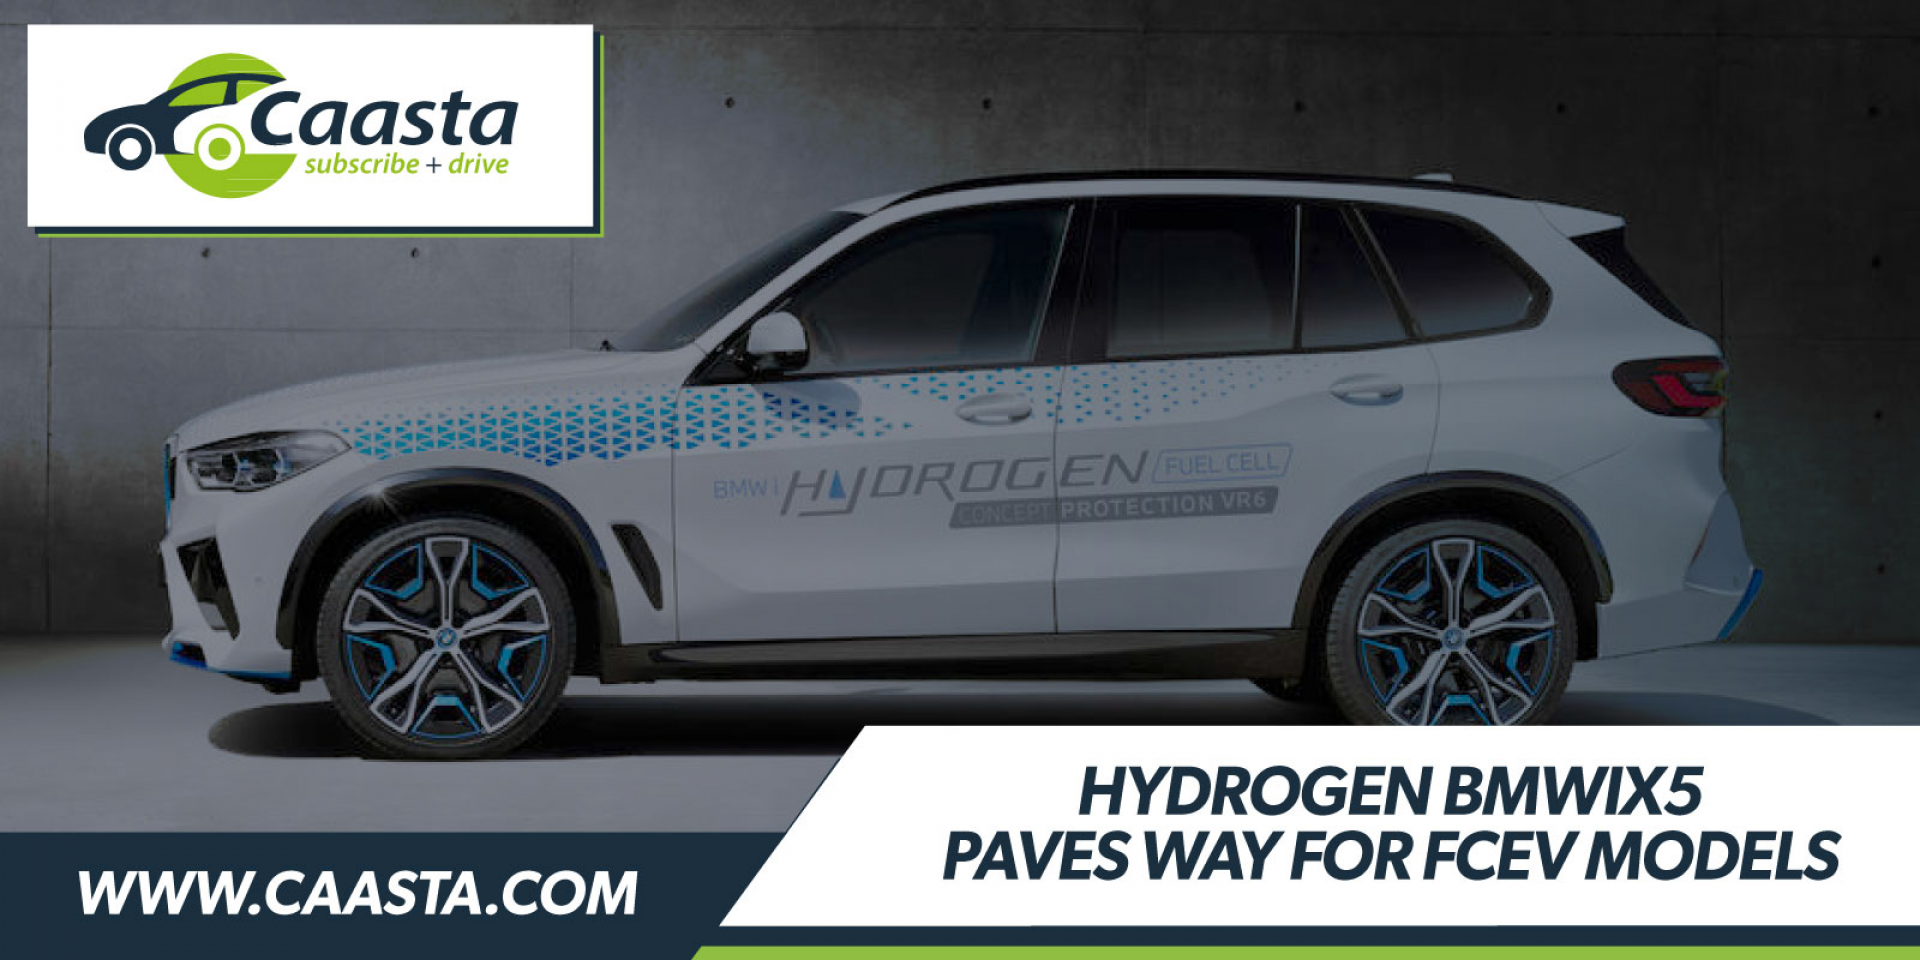 BMW iX5 Hydrogen paves way for family of FCEV models